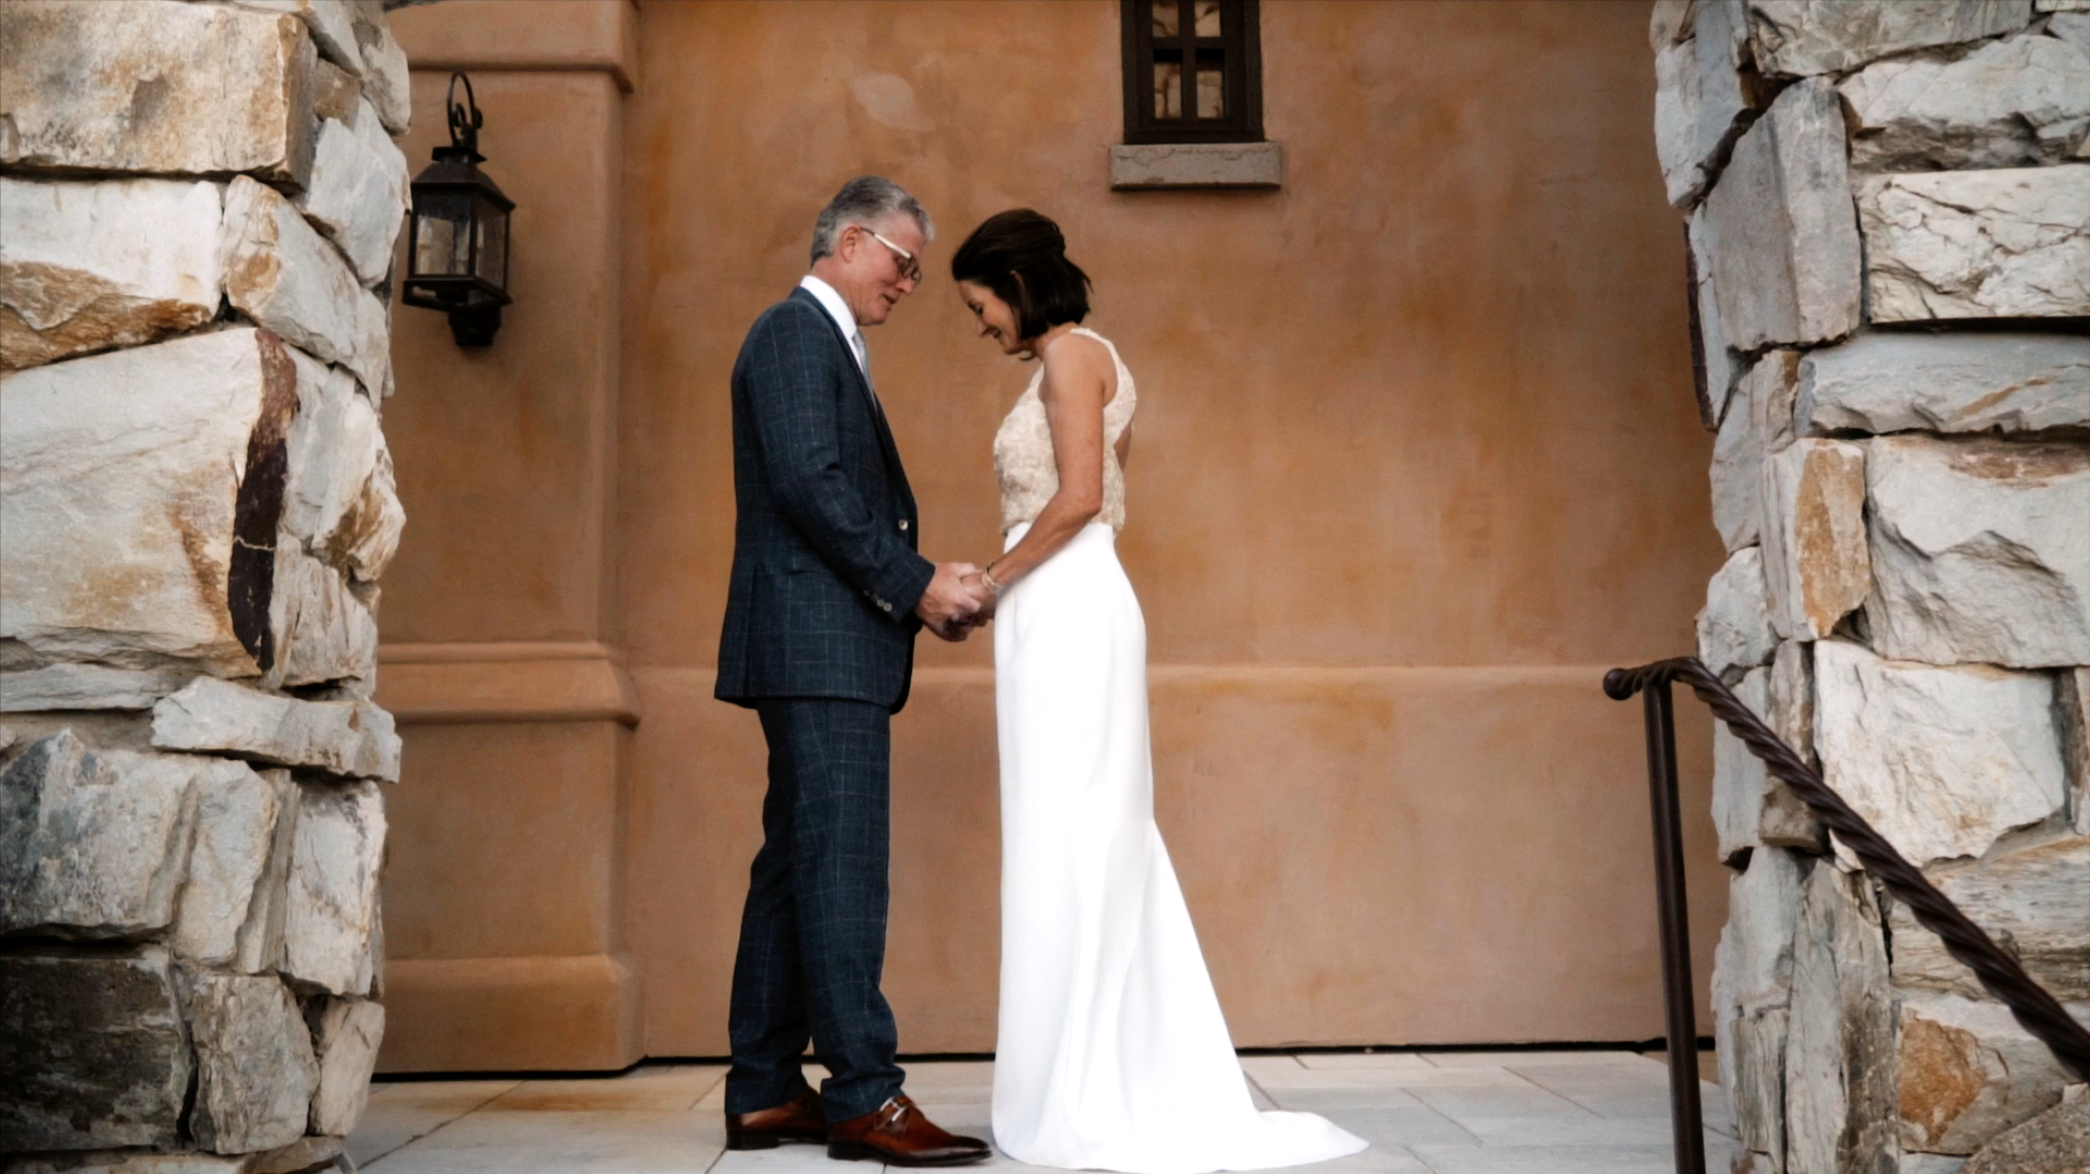 Samie & Ric - A peaceful retreat wedding video at the Estancia Club in Scottsdale